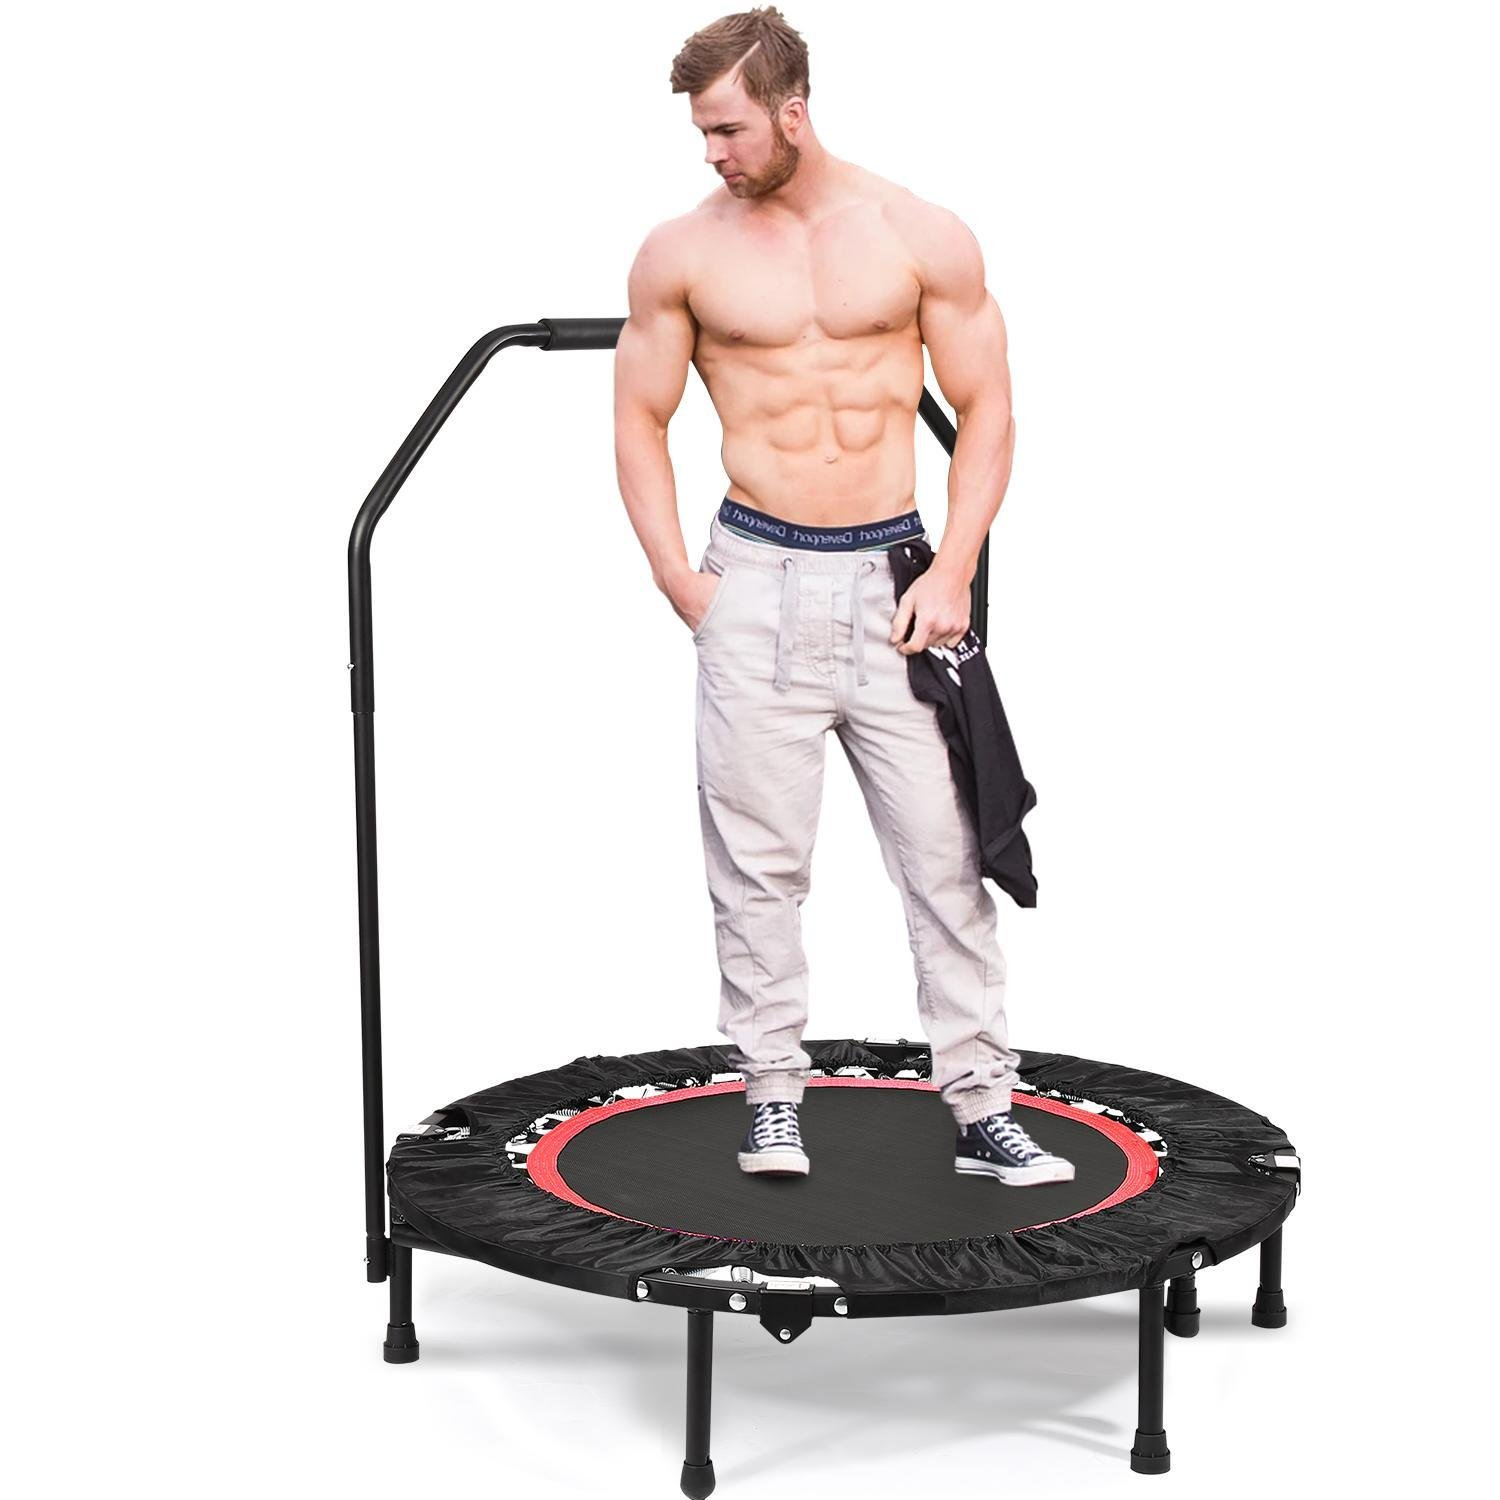 Folding Mini Trampoline with Handle Bar Fitness Rebounder Trampoline Cardio Workout Training for Kids or Adults Zero Stretch Jump Mat (Red)